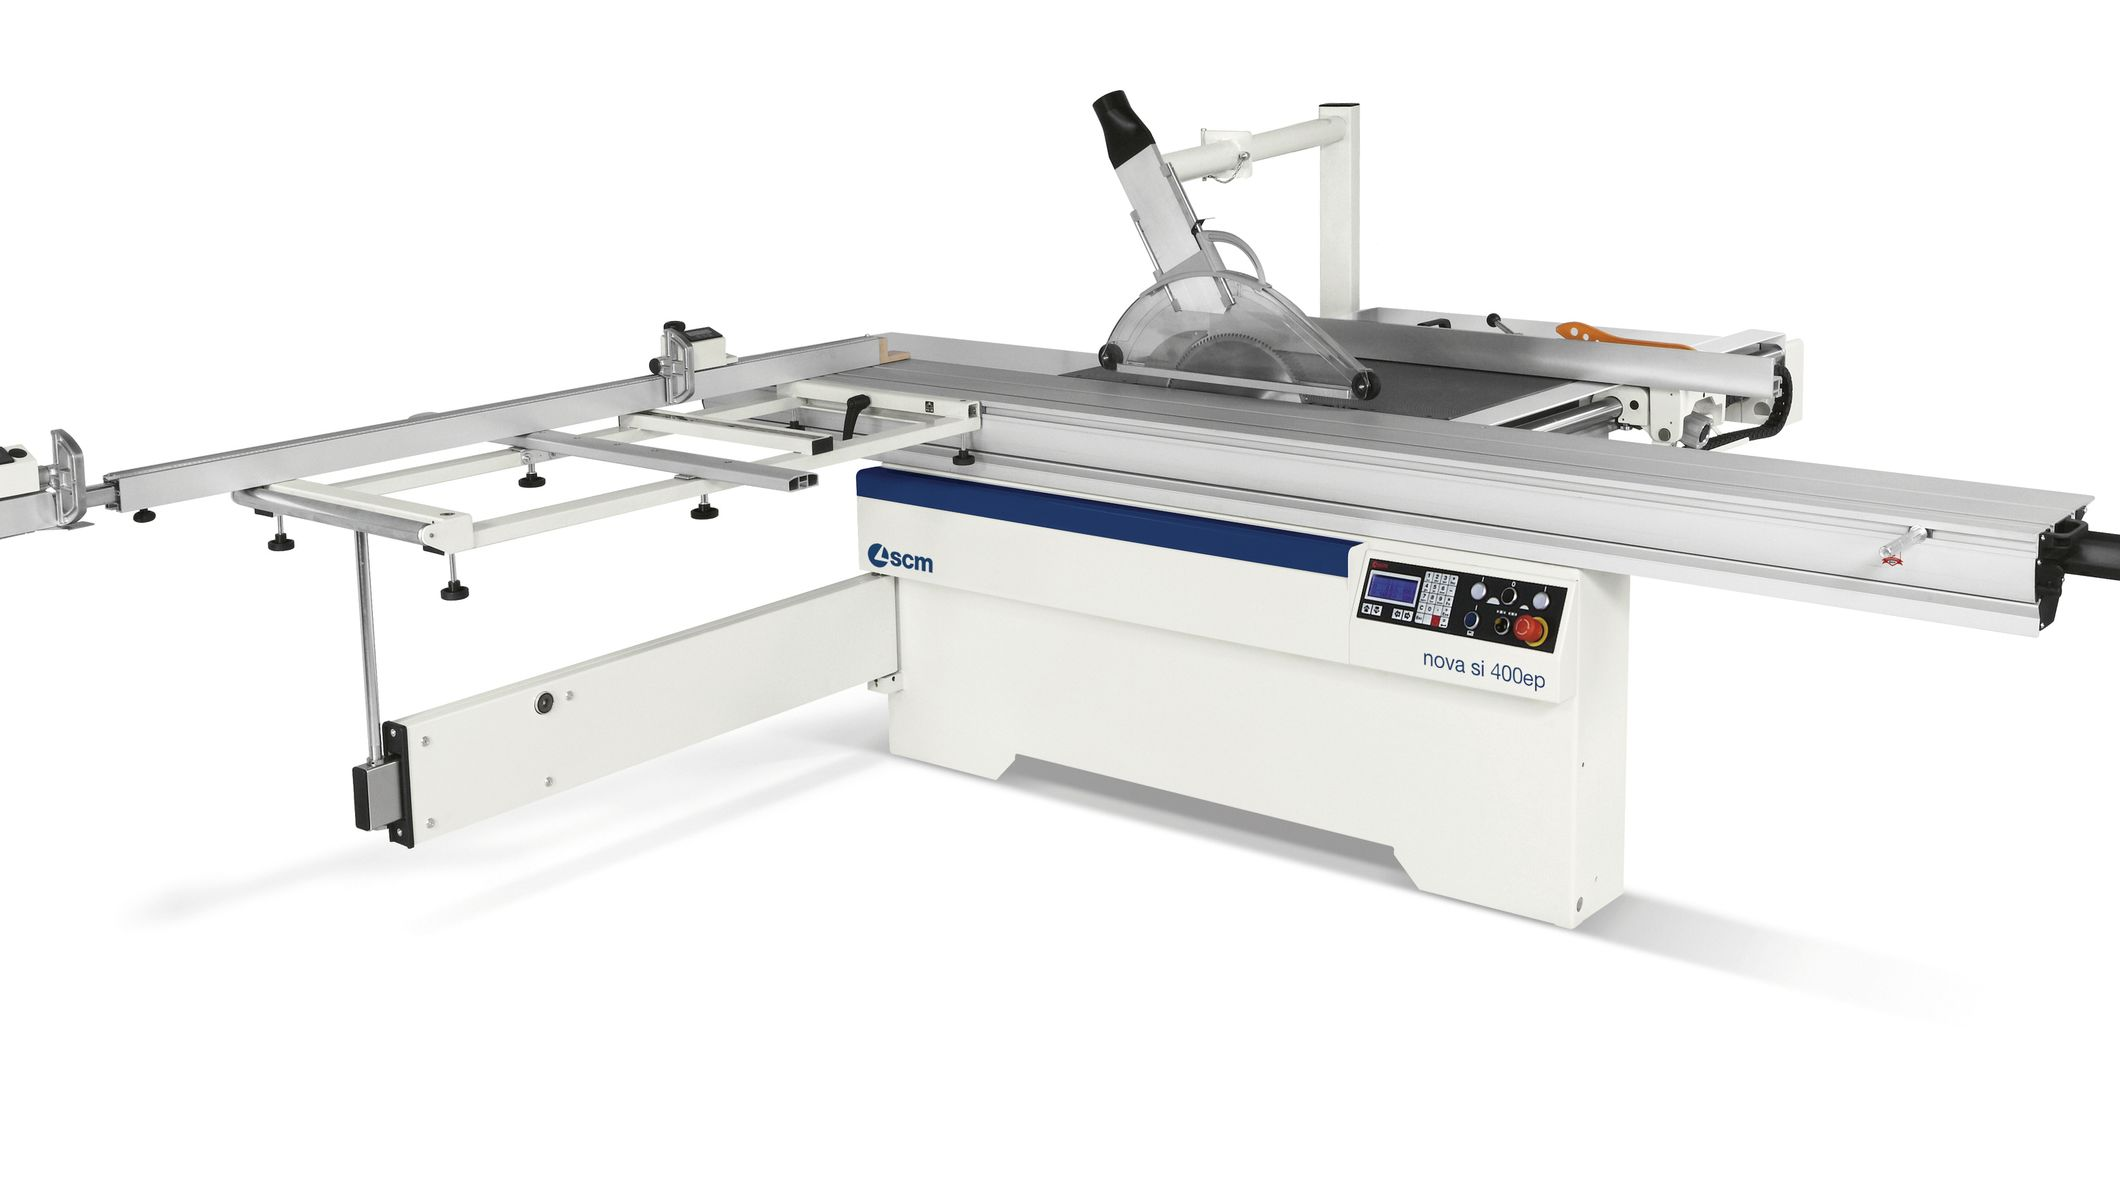 woodworking technology nova si 400ep at diamond tools ireland